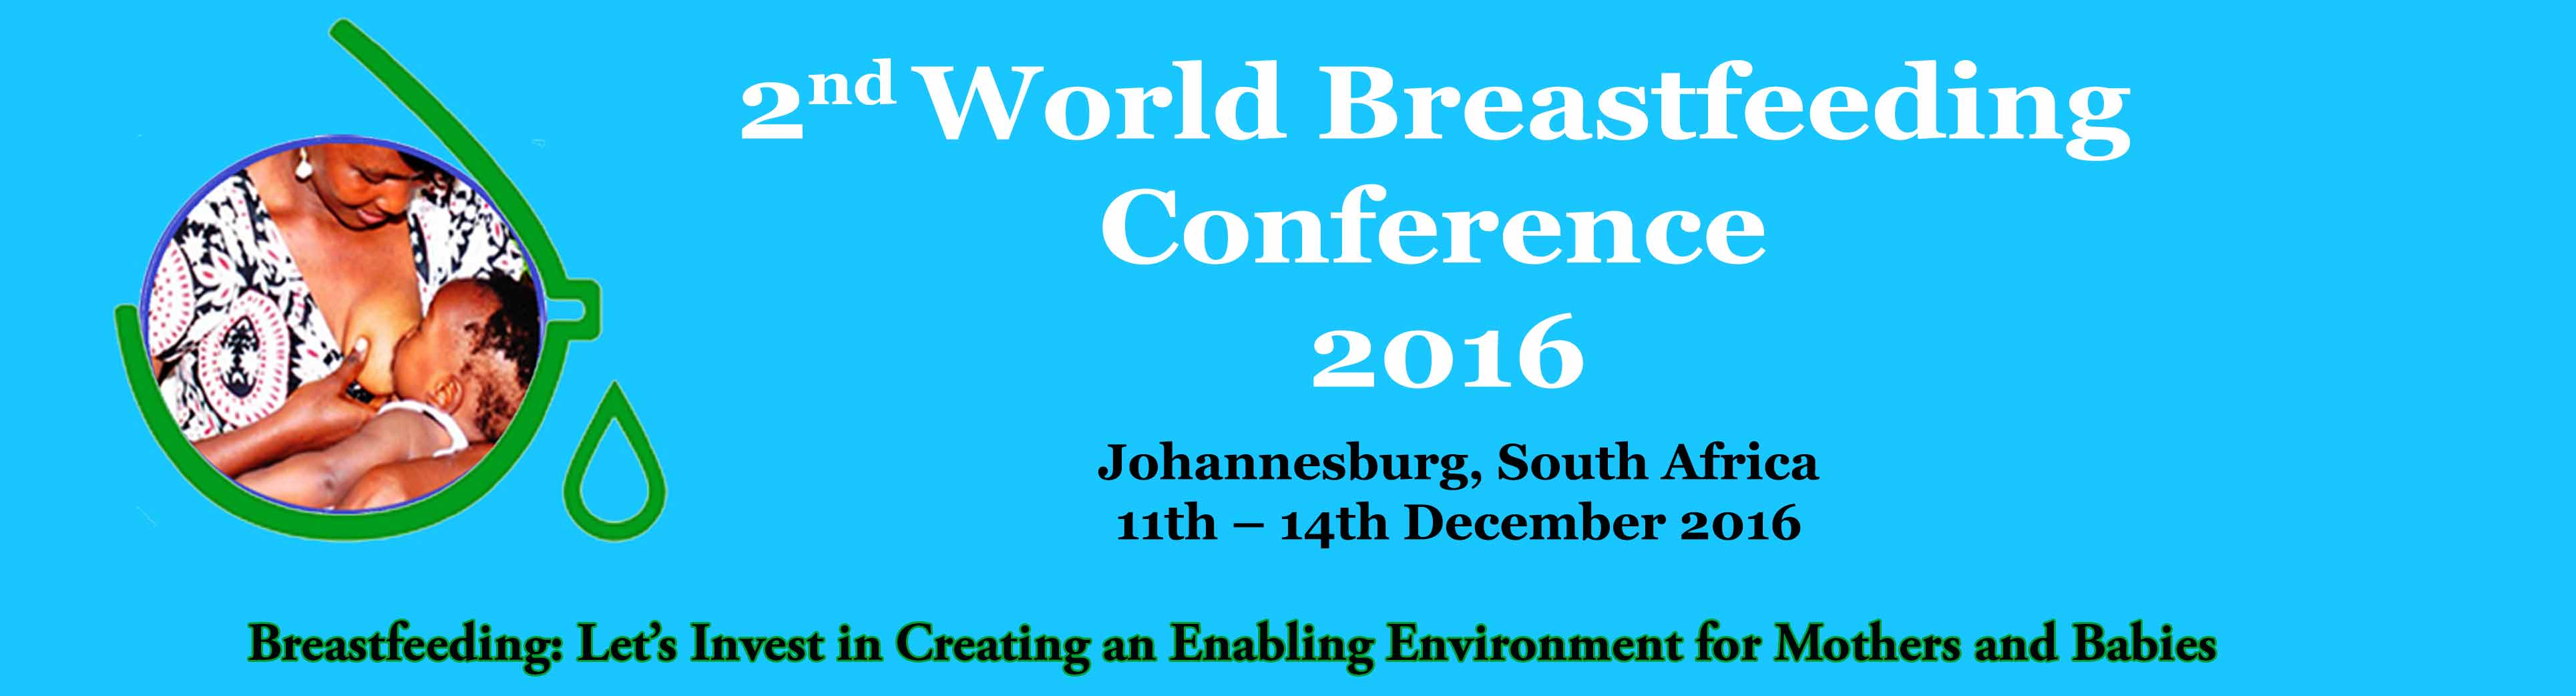 Second World Breastfeeding Conference 2016